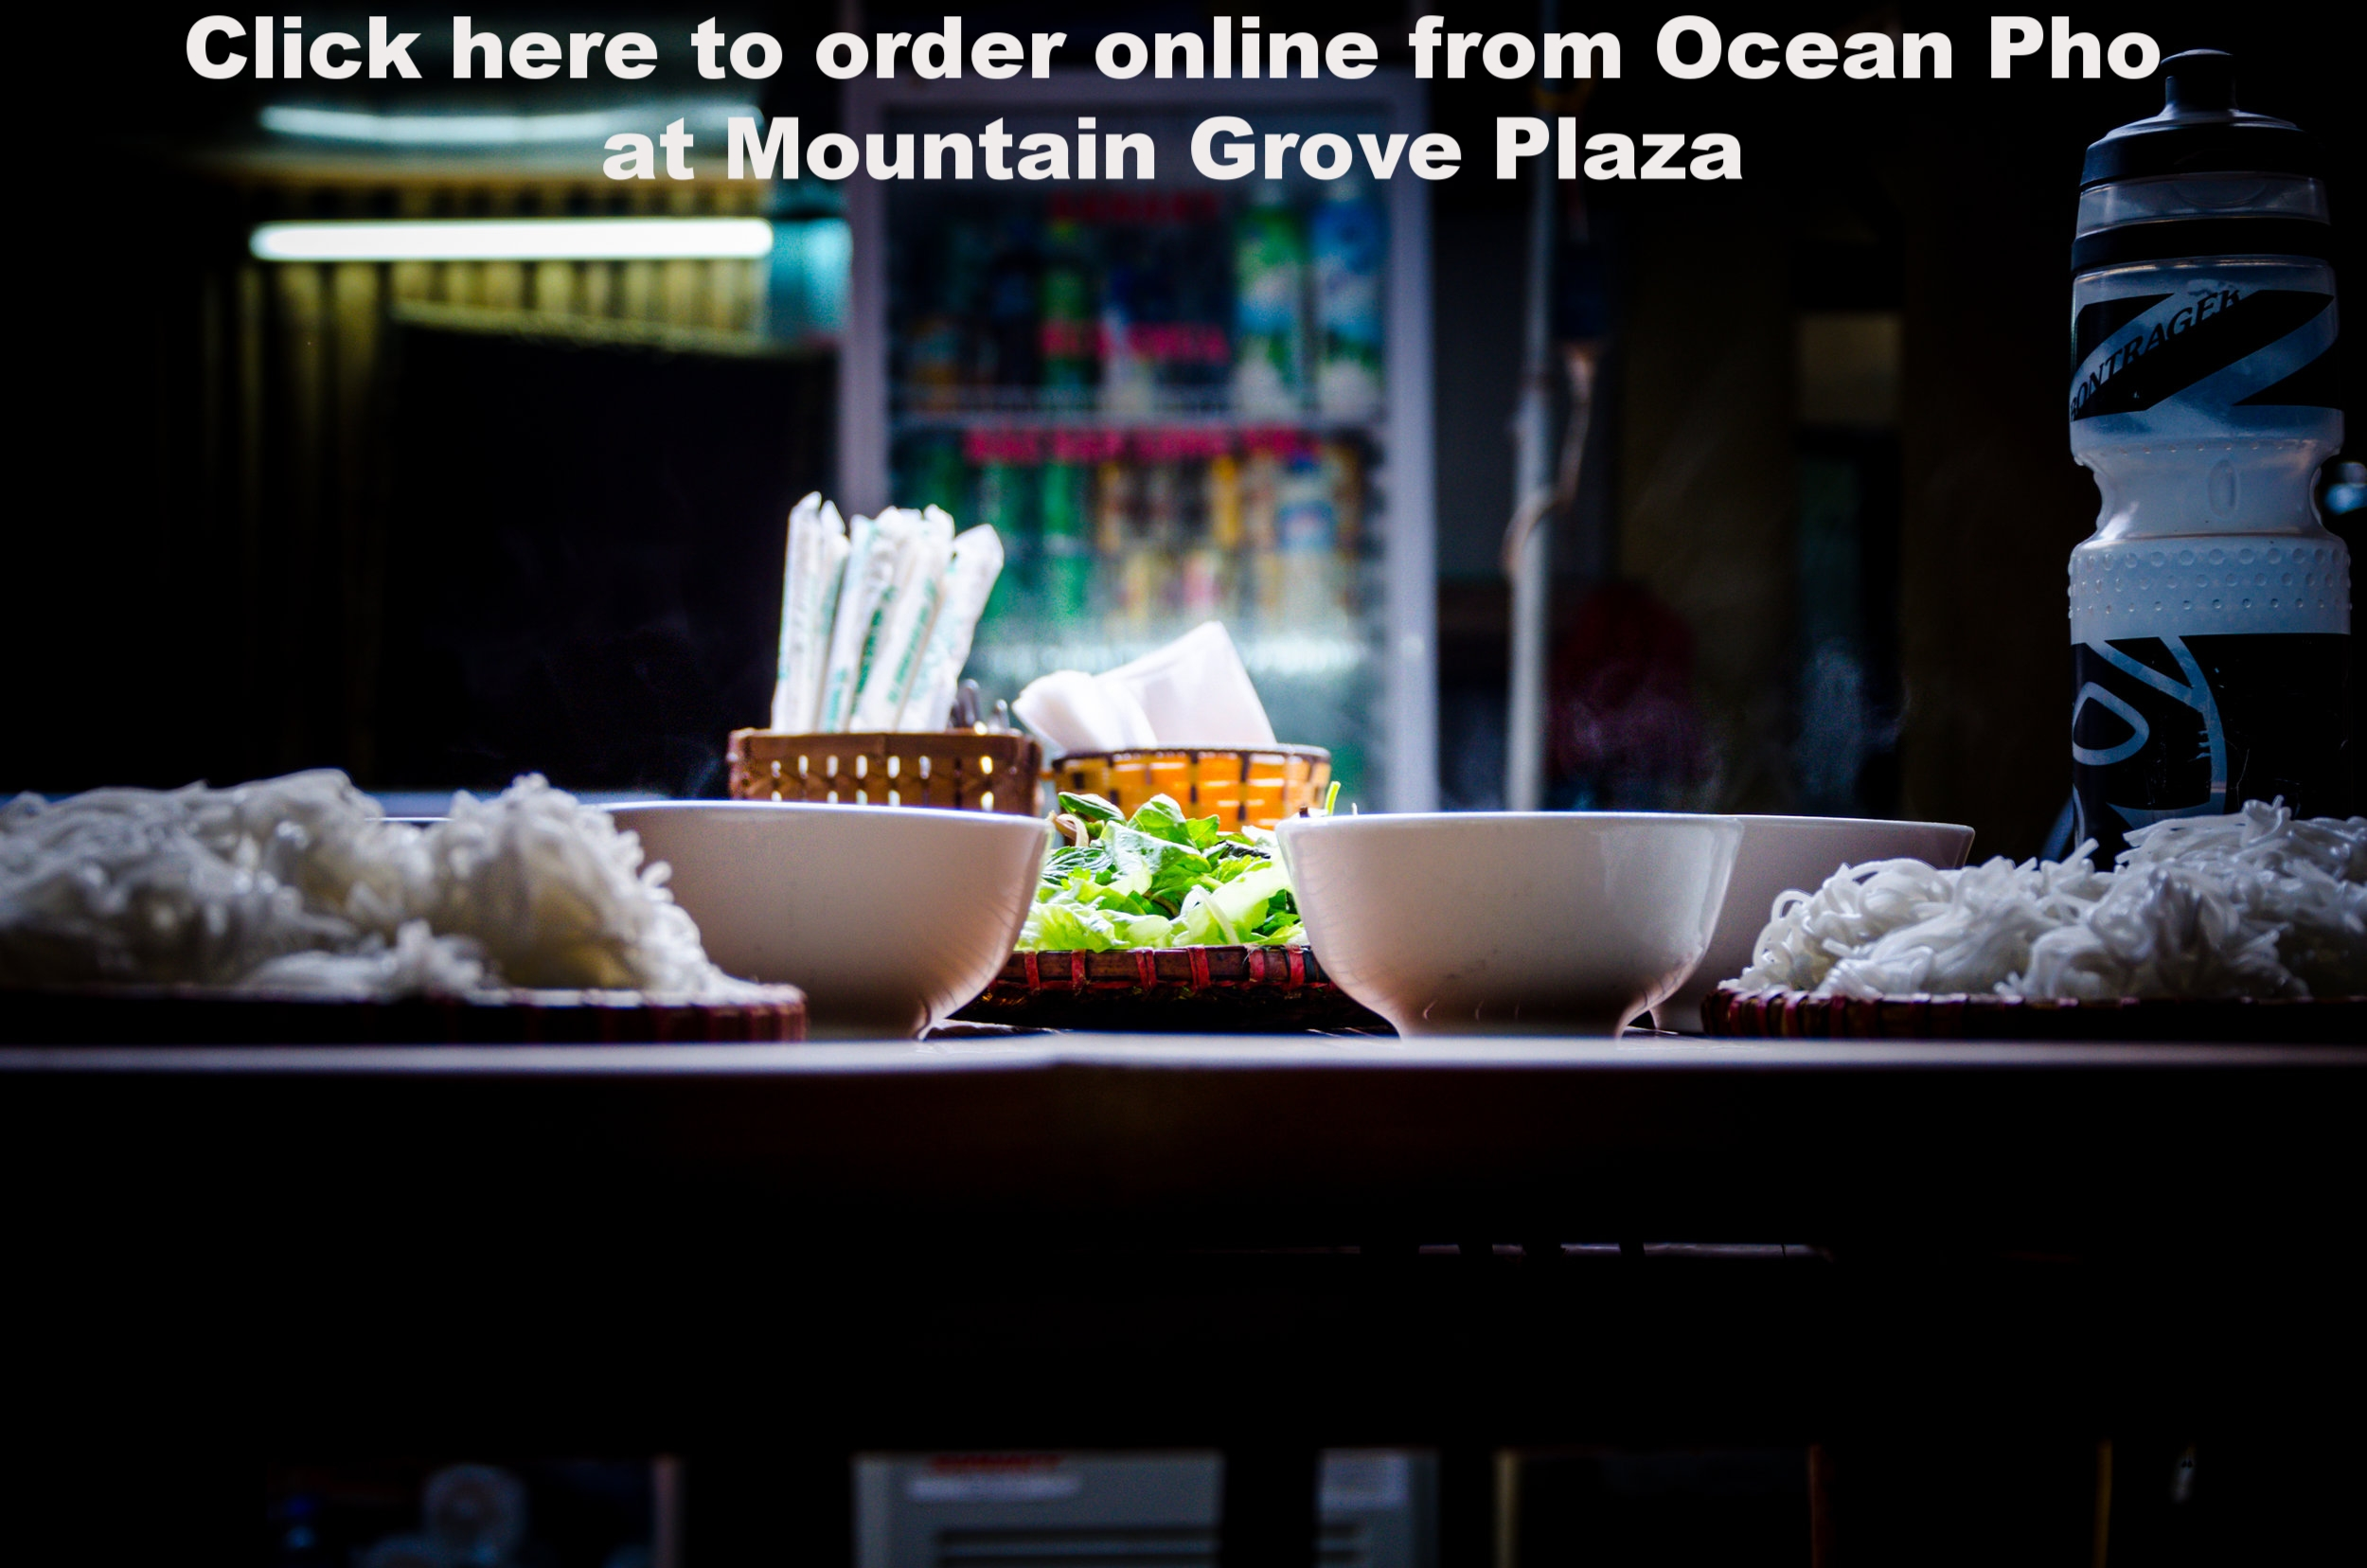 Please click on the image above to start your online order from Ocean Pho #2 at Mountain Grove Plaza! Thank you.   Address:  27471 San Bernardino Ave Suite 200, Redlands, CA 92374 . Located directly across from Harkins Movie Theatre and next to Farmer Boys.   Hours of Operation:  We are open 7 days a week, 9:30 AM to 11:00 PM. Only takeout/ To Go orders will be accepted starting at 10:30 PM.